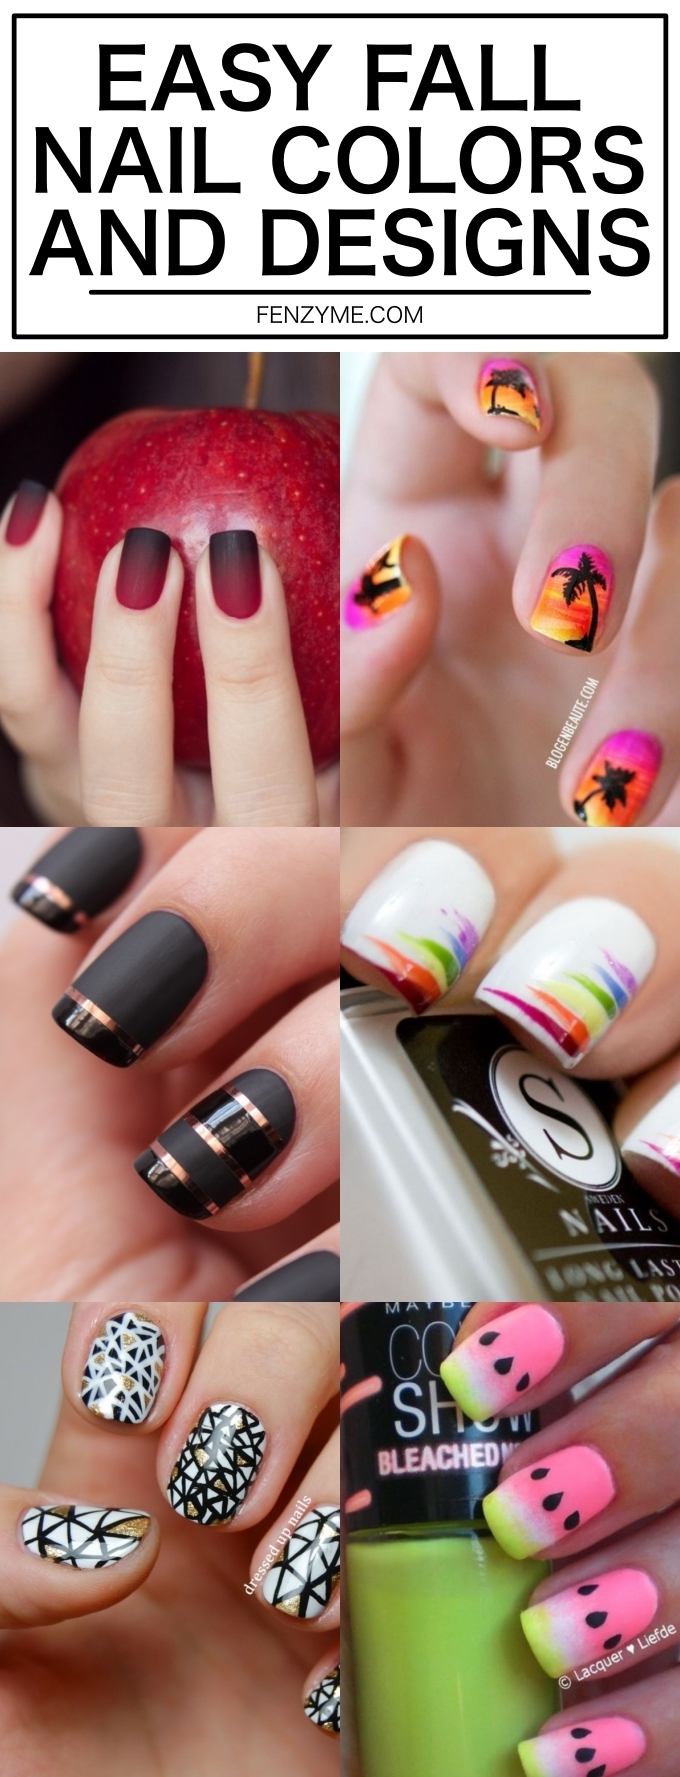 EASY FALL NAIL COLORS AND DESIGNS